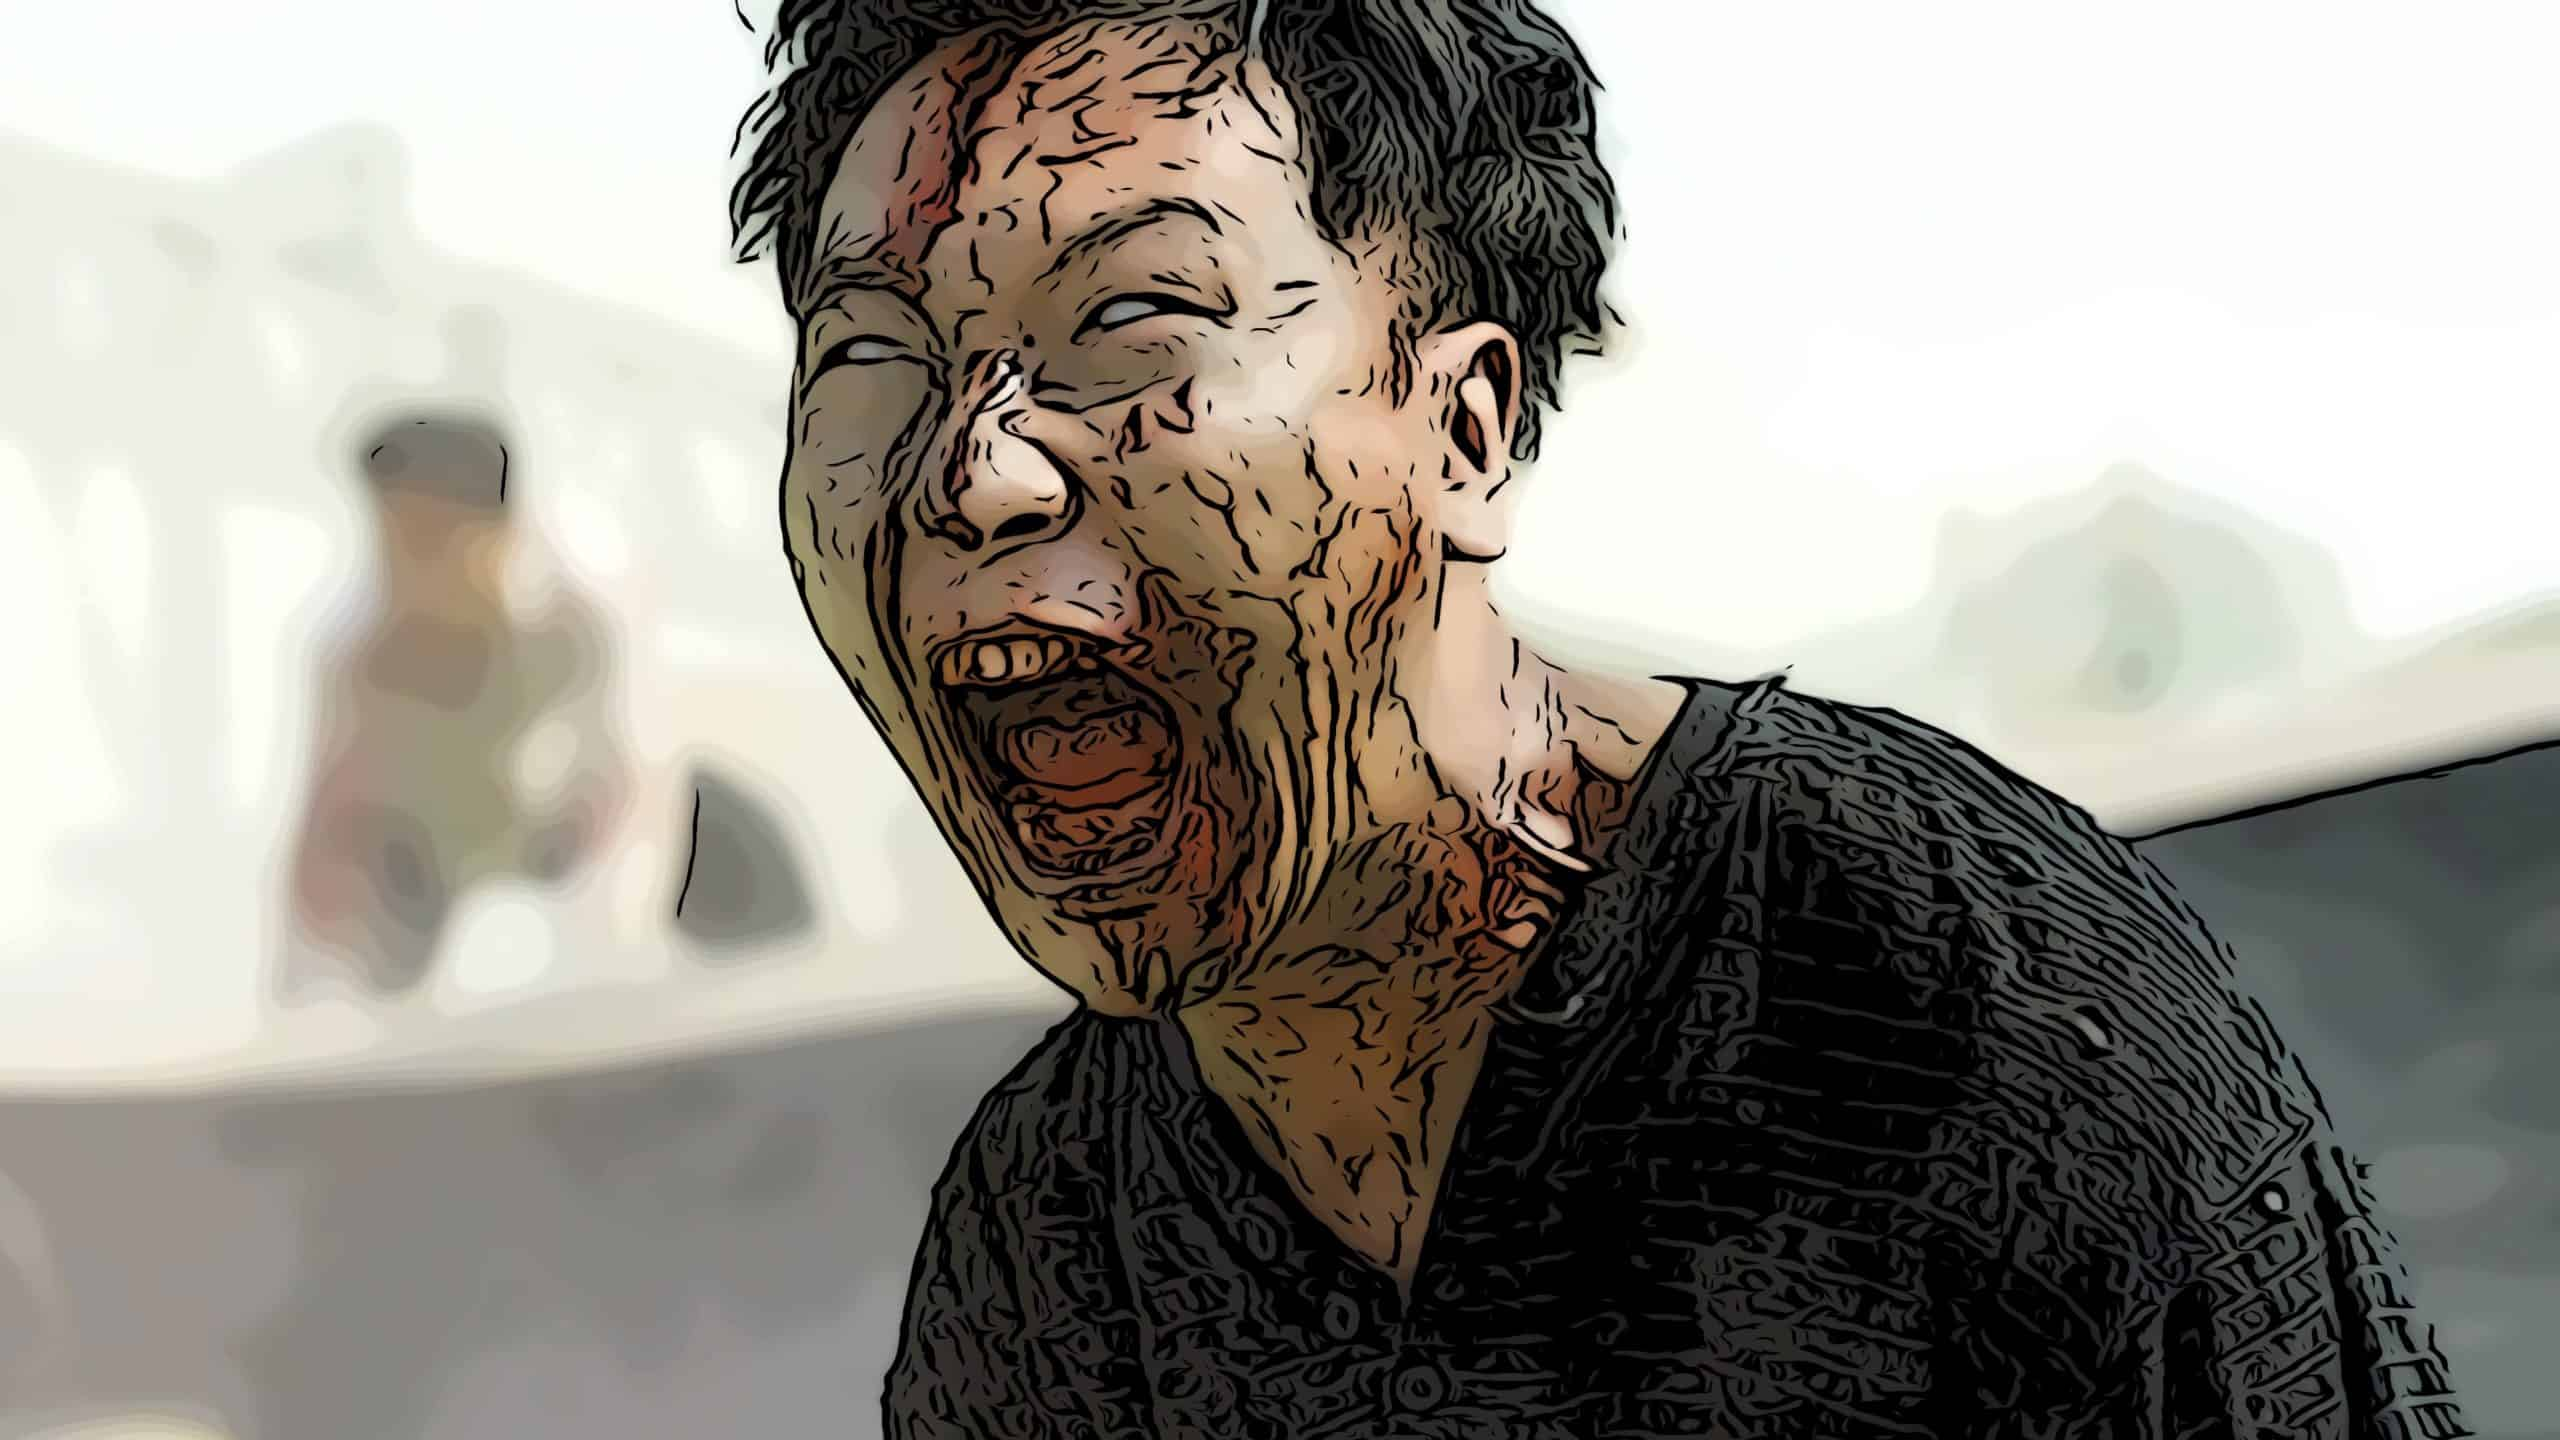 Scene from Train To Busan for zombie movies on Netflix post.